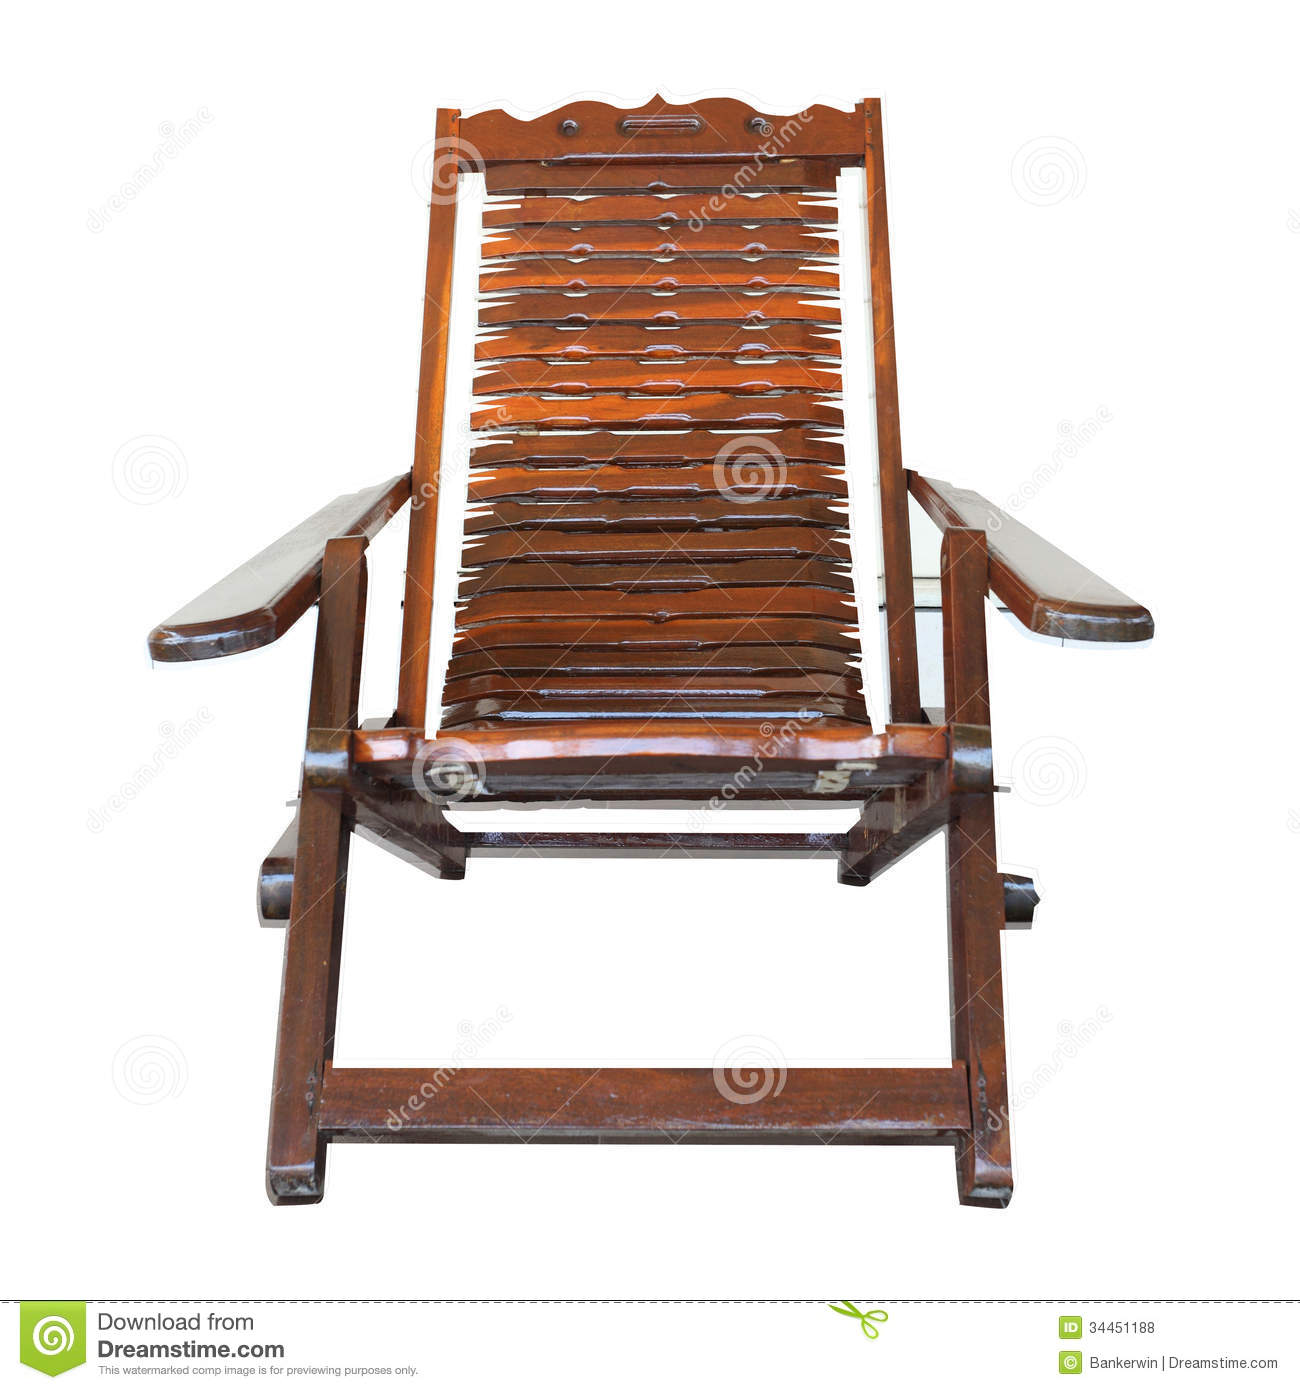 Royaltyfree Stock Photo Download Isolated Wood Arms Chair